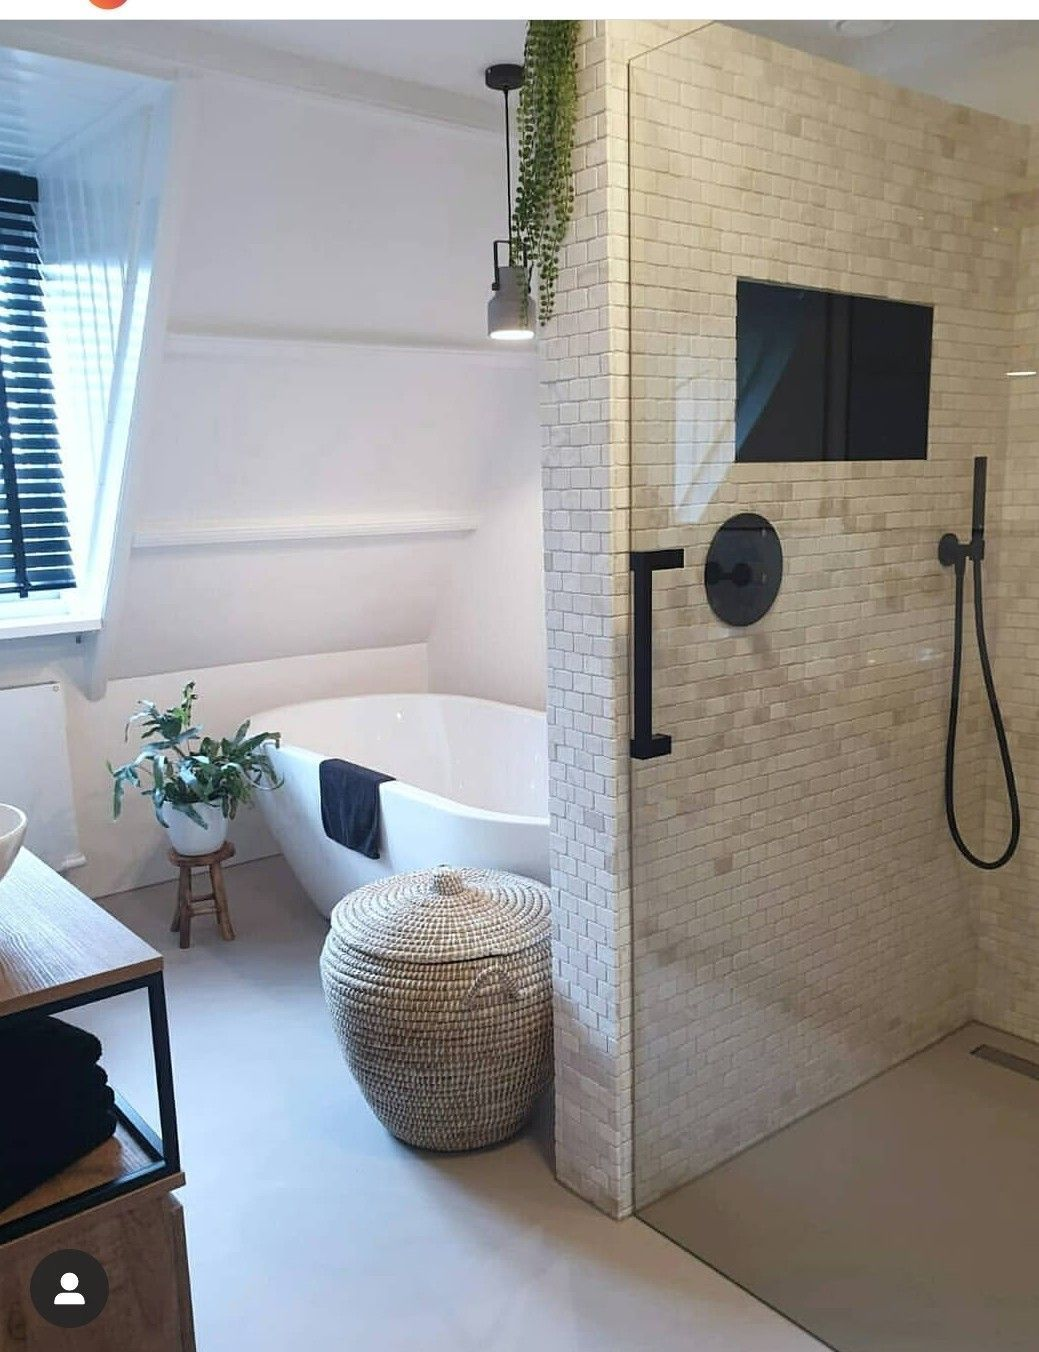 Bad Inspiration Moderne Kleine Ideen Www Mobmasker Com Diy Home Blog 2019 Bathroom Inspiration Modern Modern Bathroom Design Bathroom Design